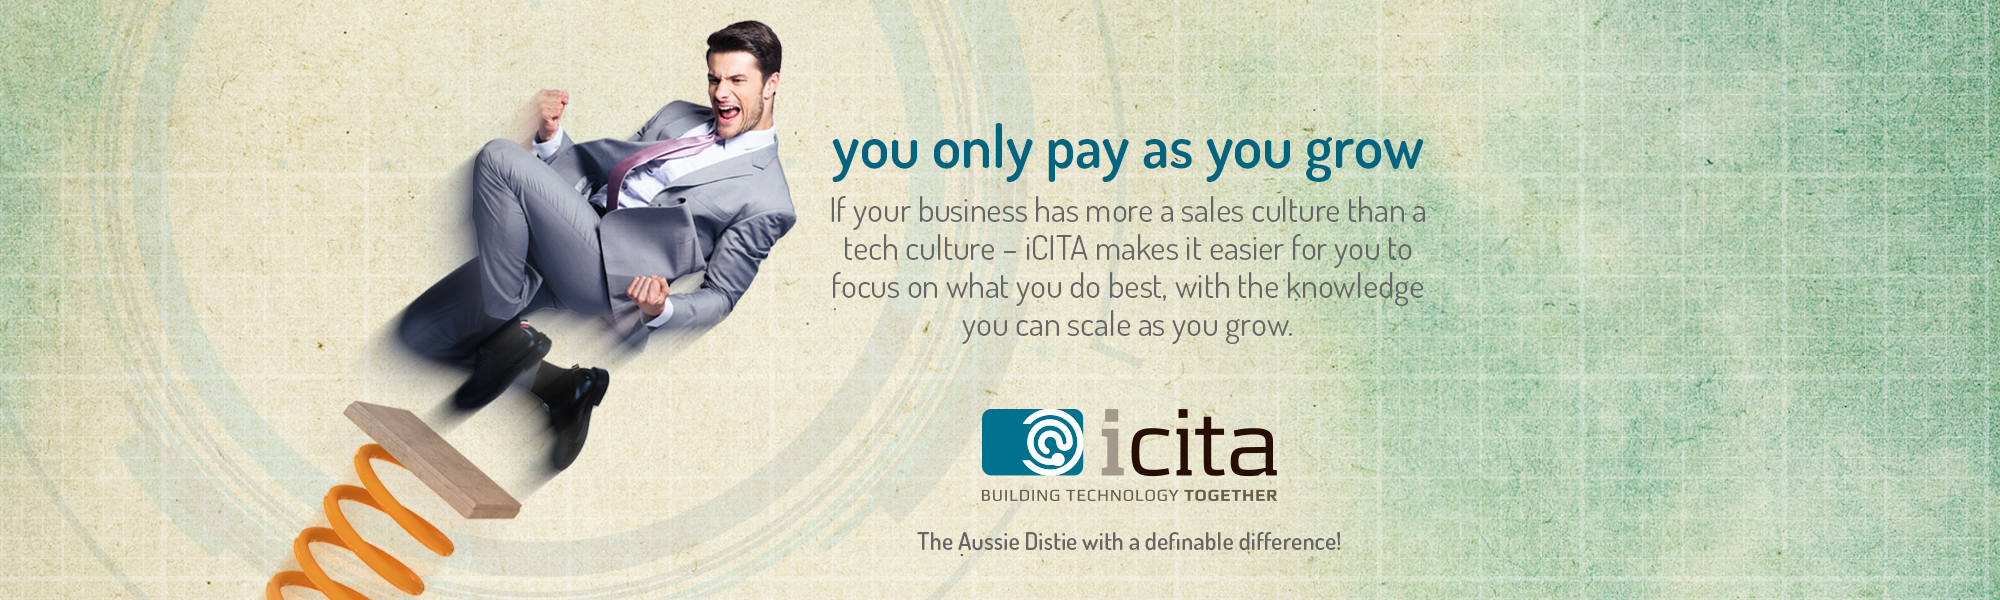 iCITA-DistieDifference-PayGrow